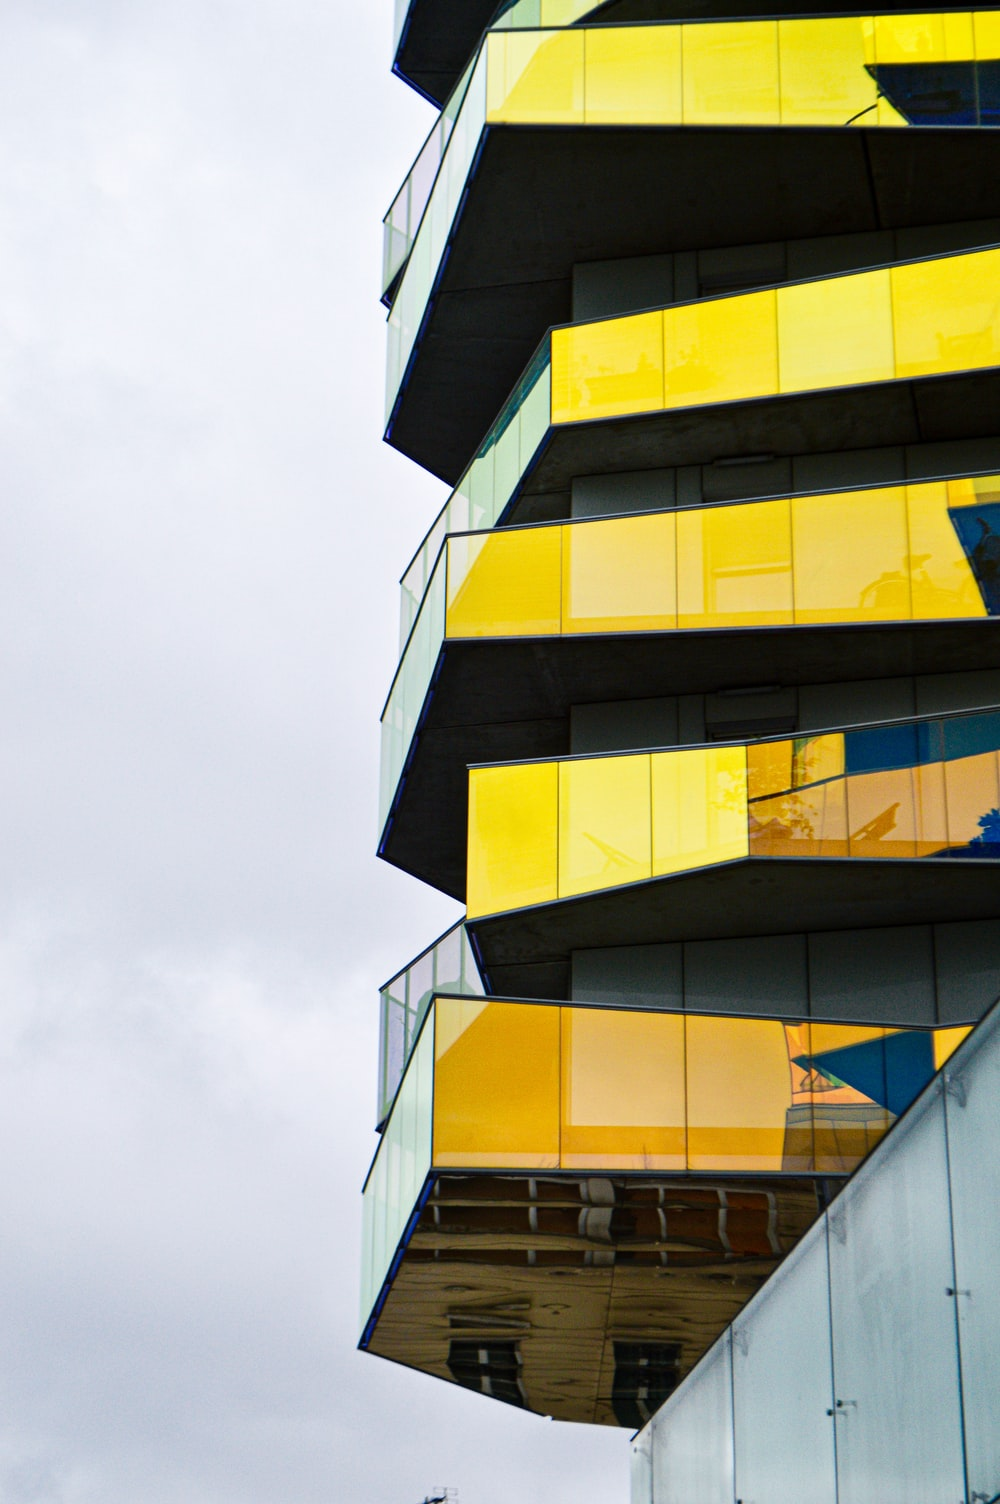 yellow and black building under white sky